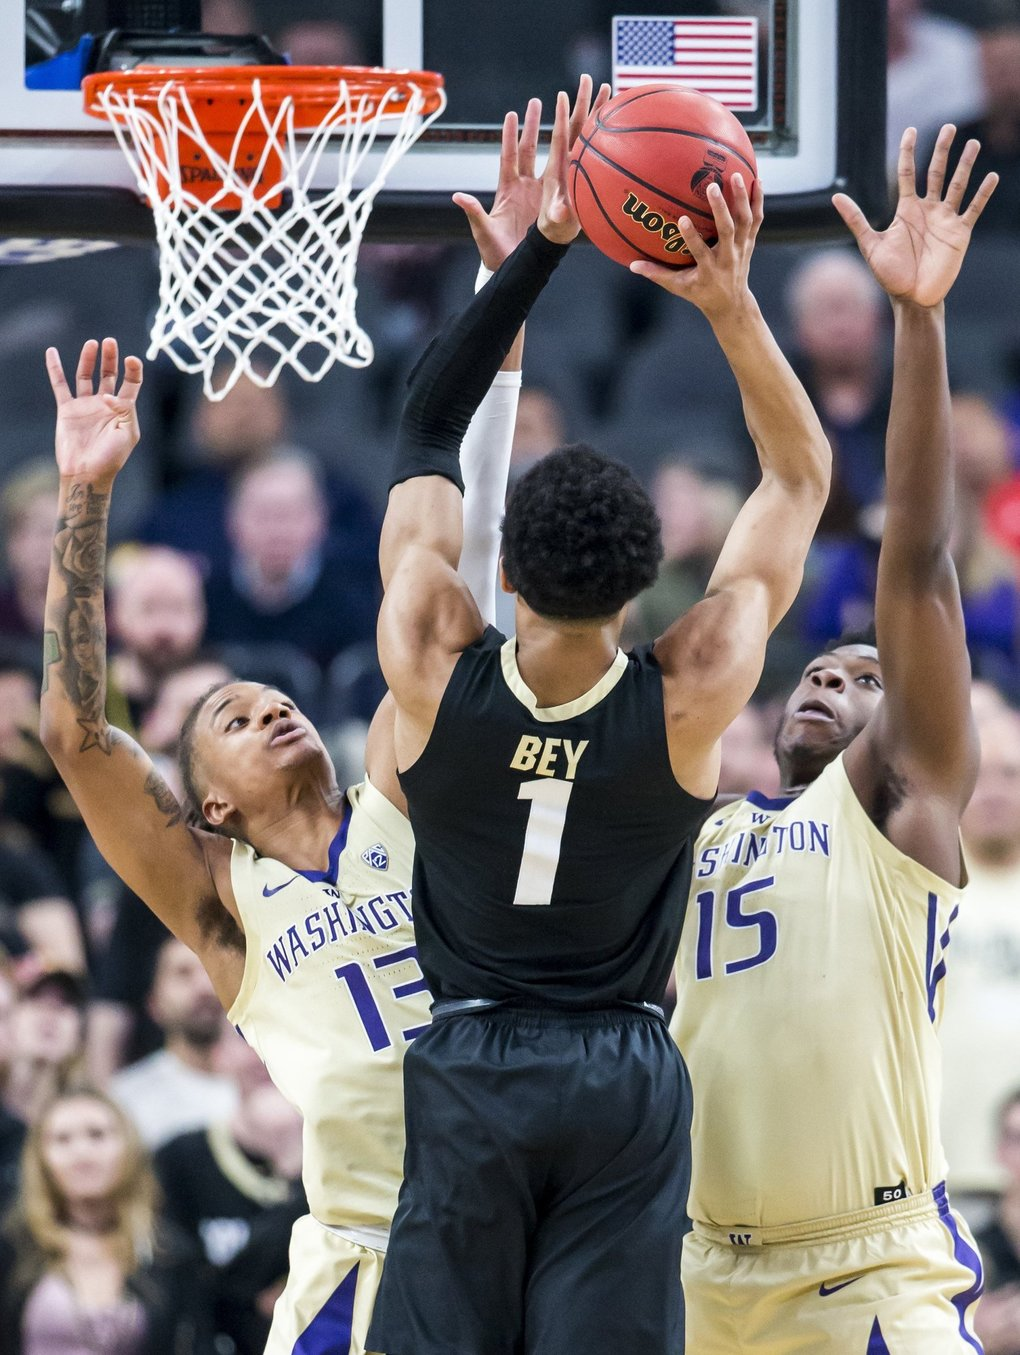 Colorado Buffaloes guard Tyler Bey tries to shoot over Washington Huskies forwards Hameir Wright, left, and Noah Dickerson as the Washington Huskies defeat the Colorado Buffaloes 66-61 for the semifinals of the Pac-12 Tournament at T-Mobile Arena in Las Vegas, Nevada Friday March 15, 2019. (Bettina Hansen / The Seattle Times)